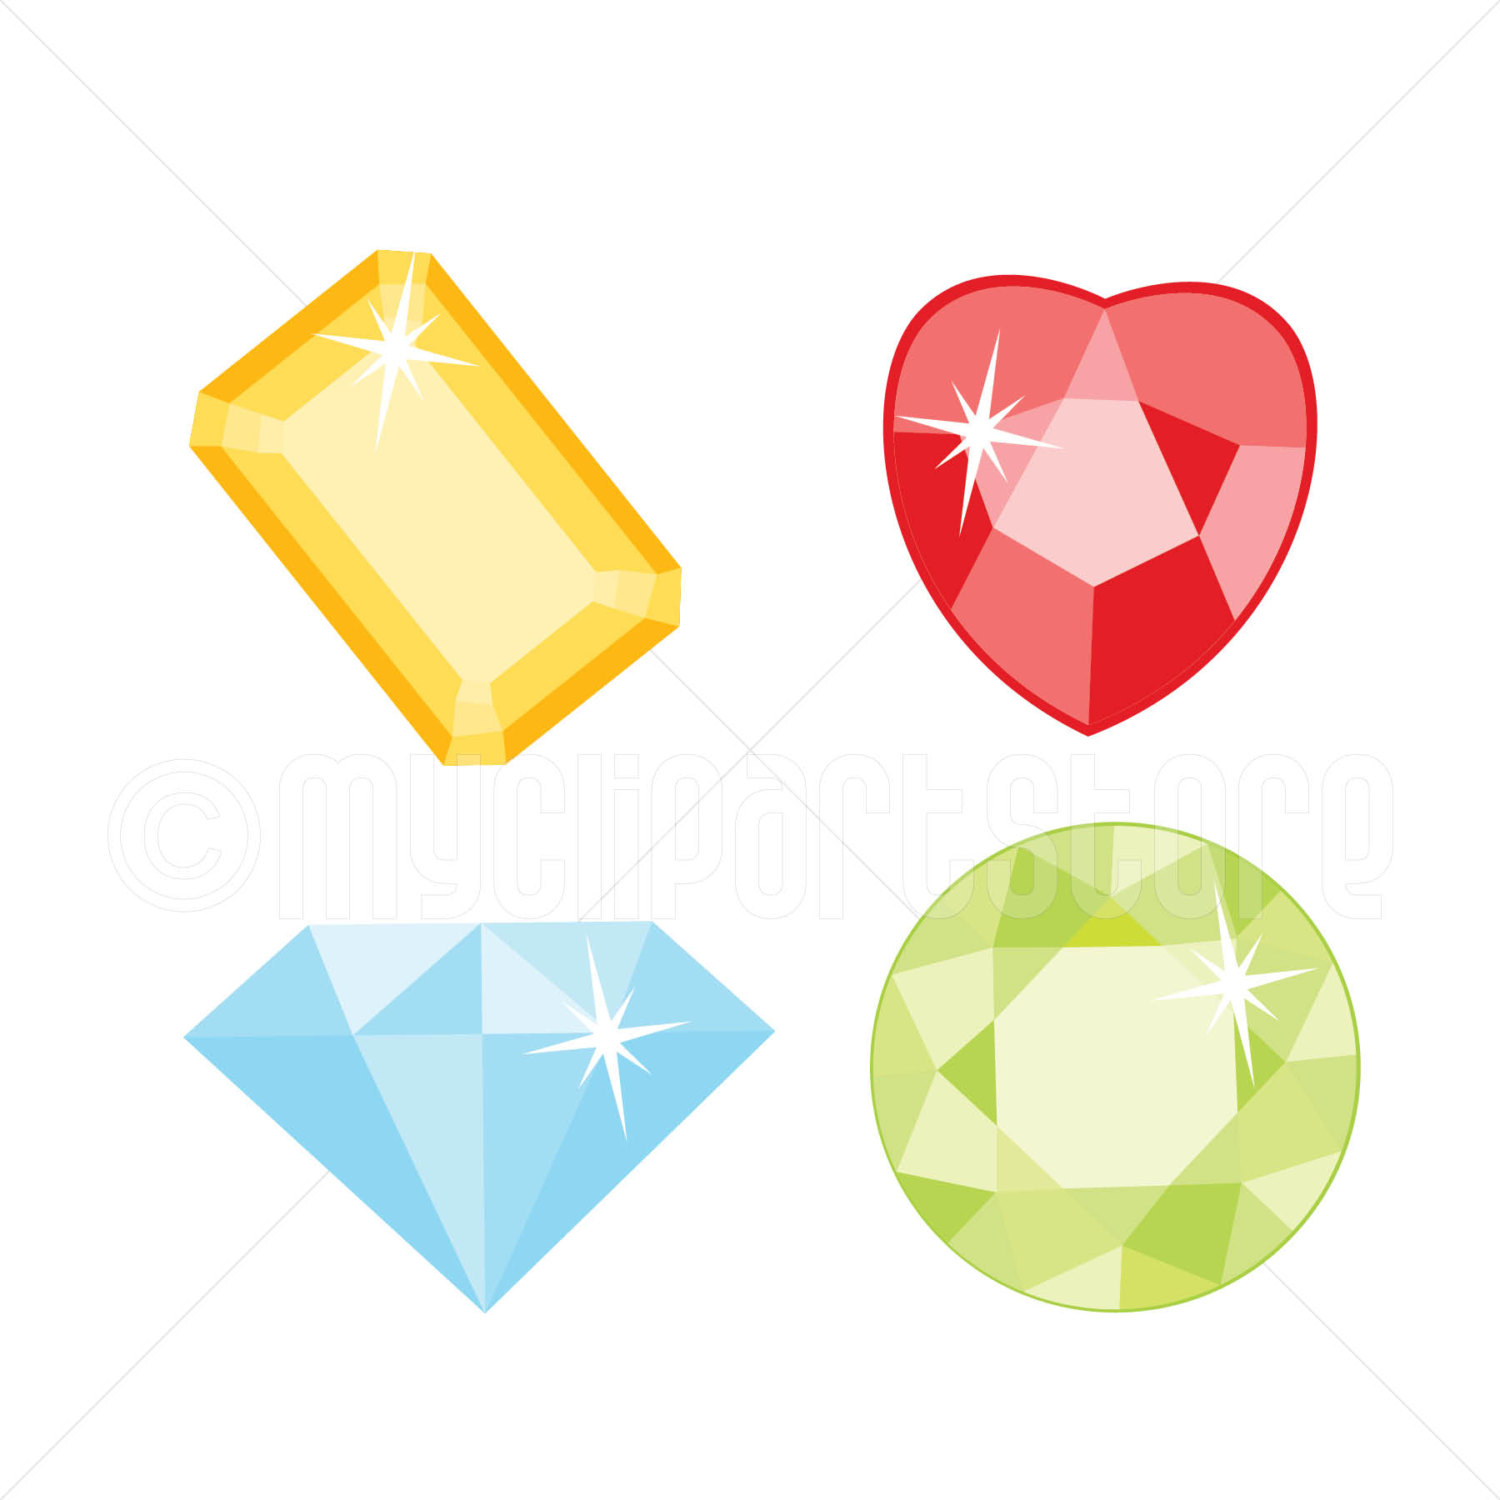 Gems clipart jewellery  Gems and digital file